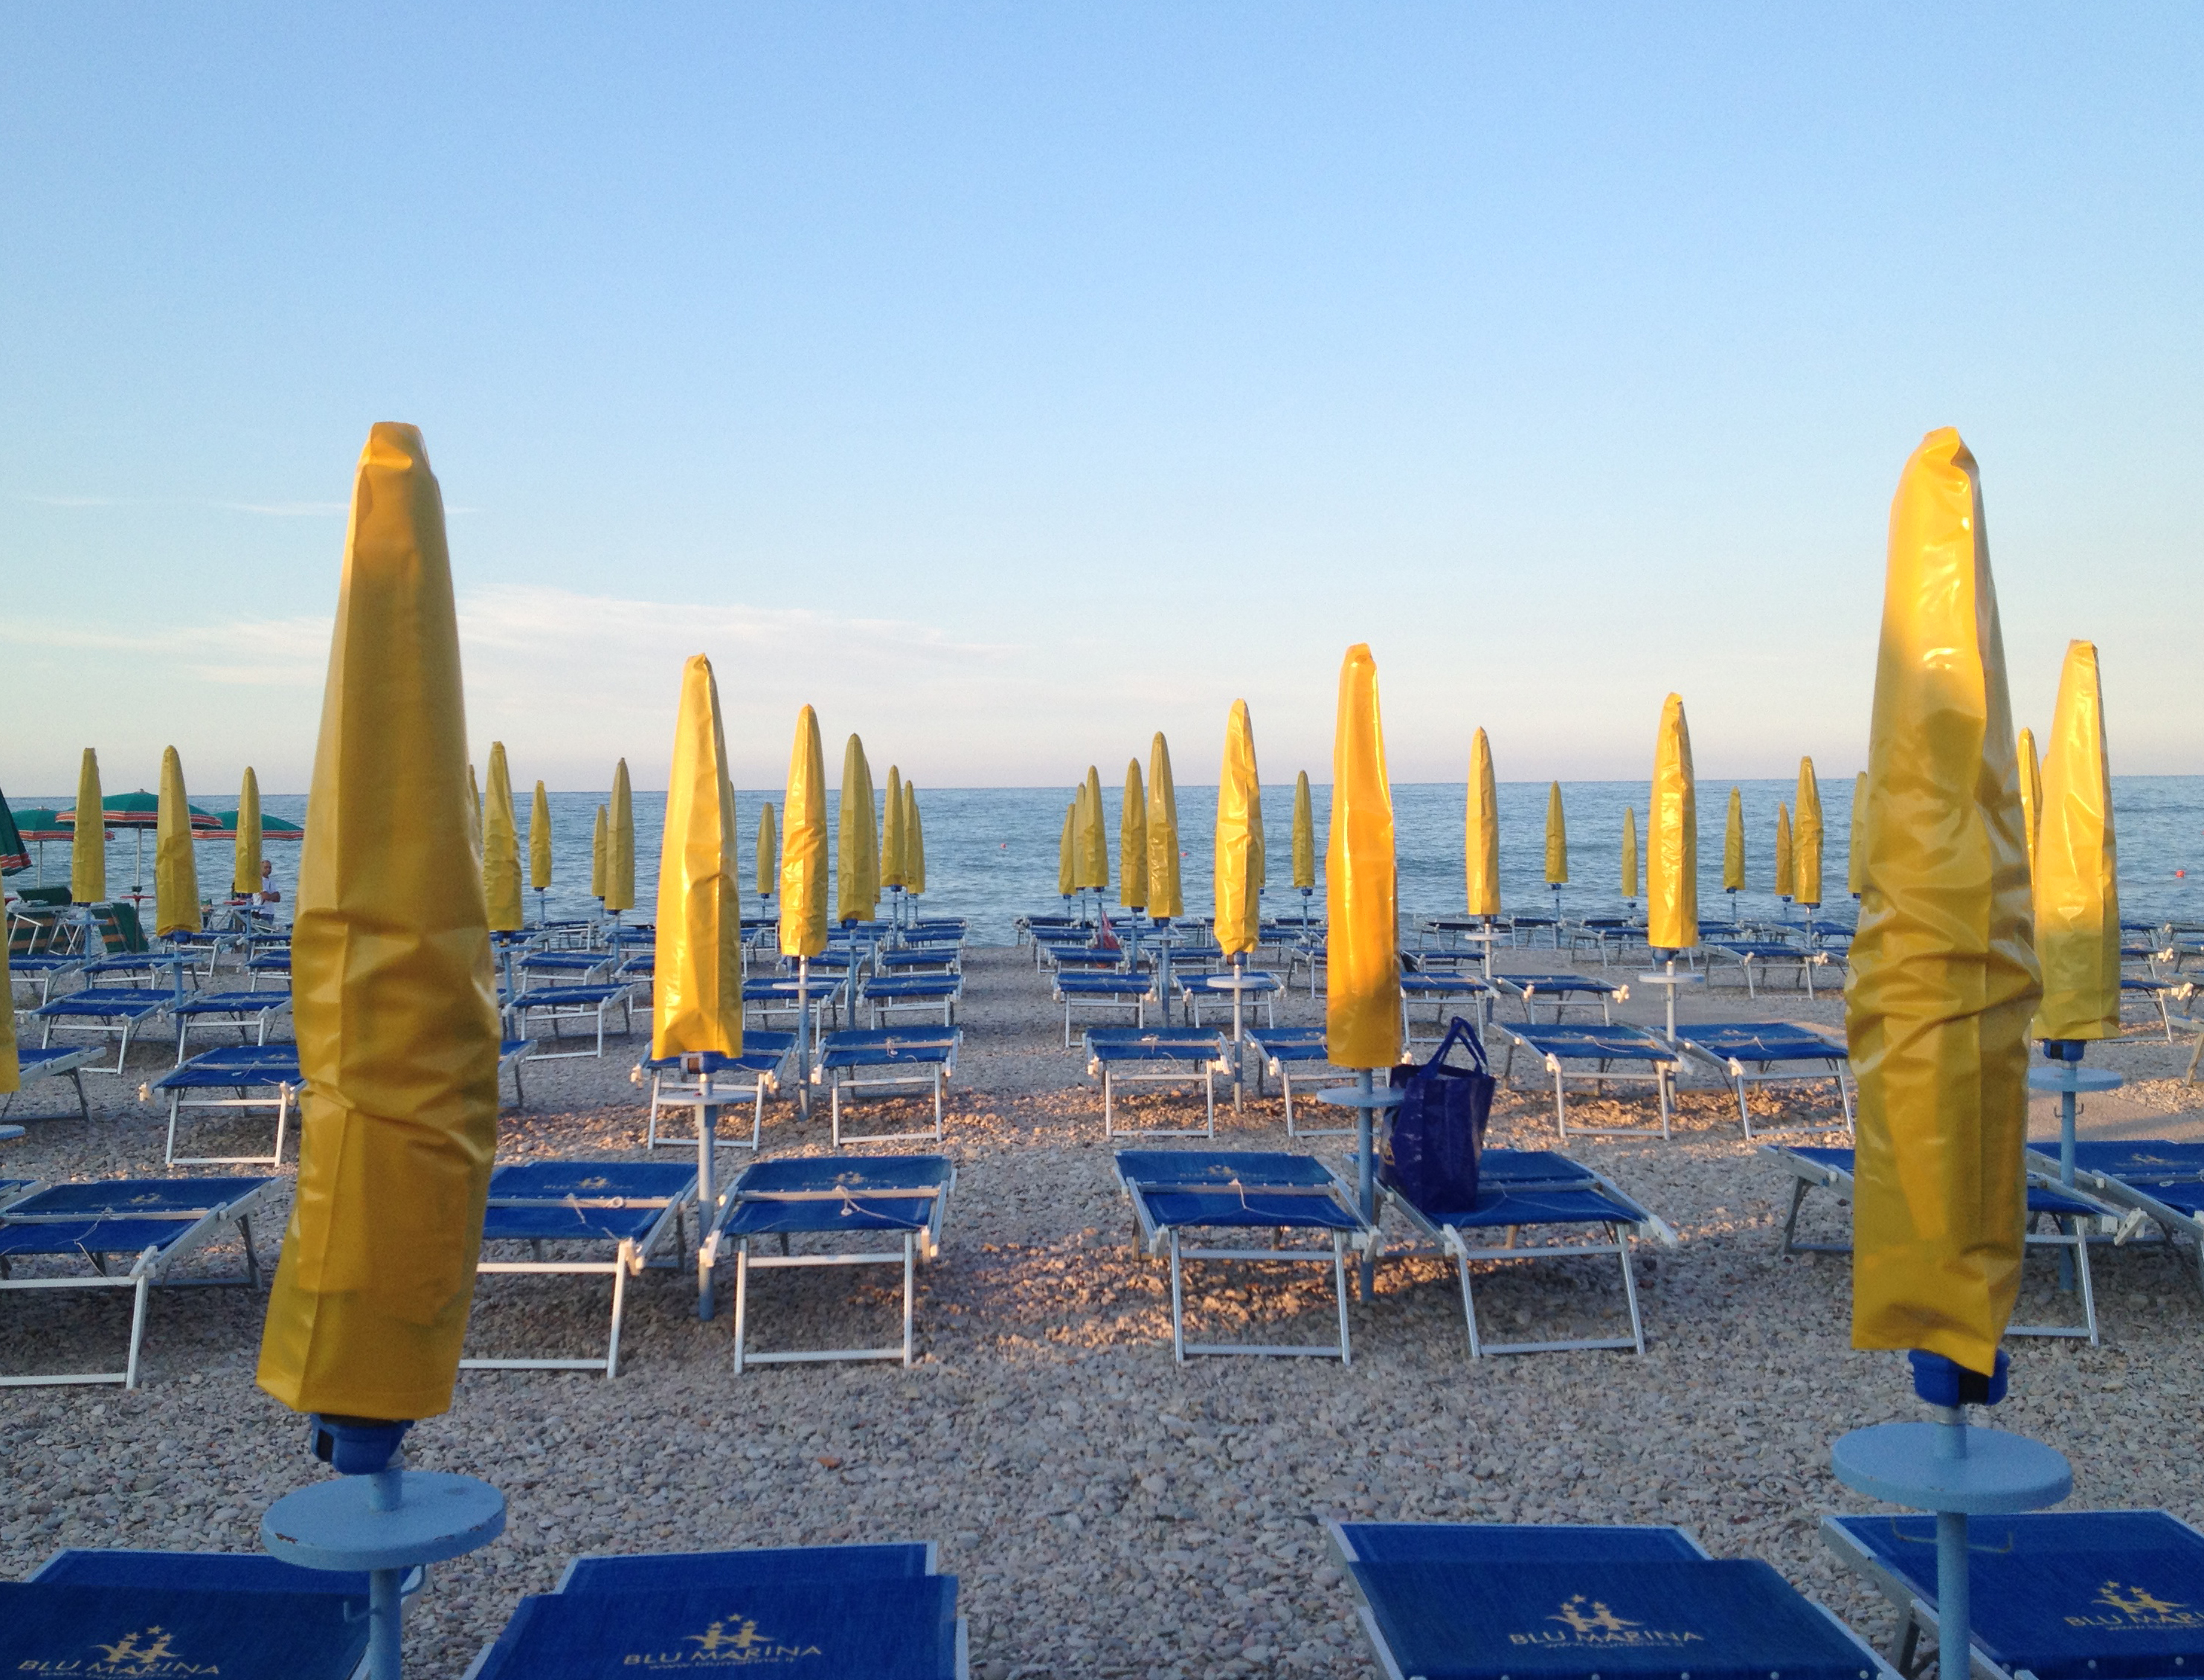 Beach in Fano, Italy